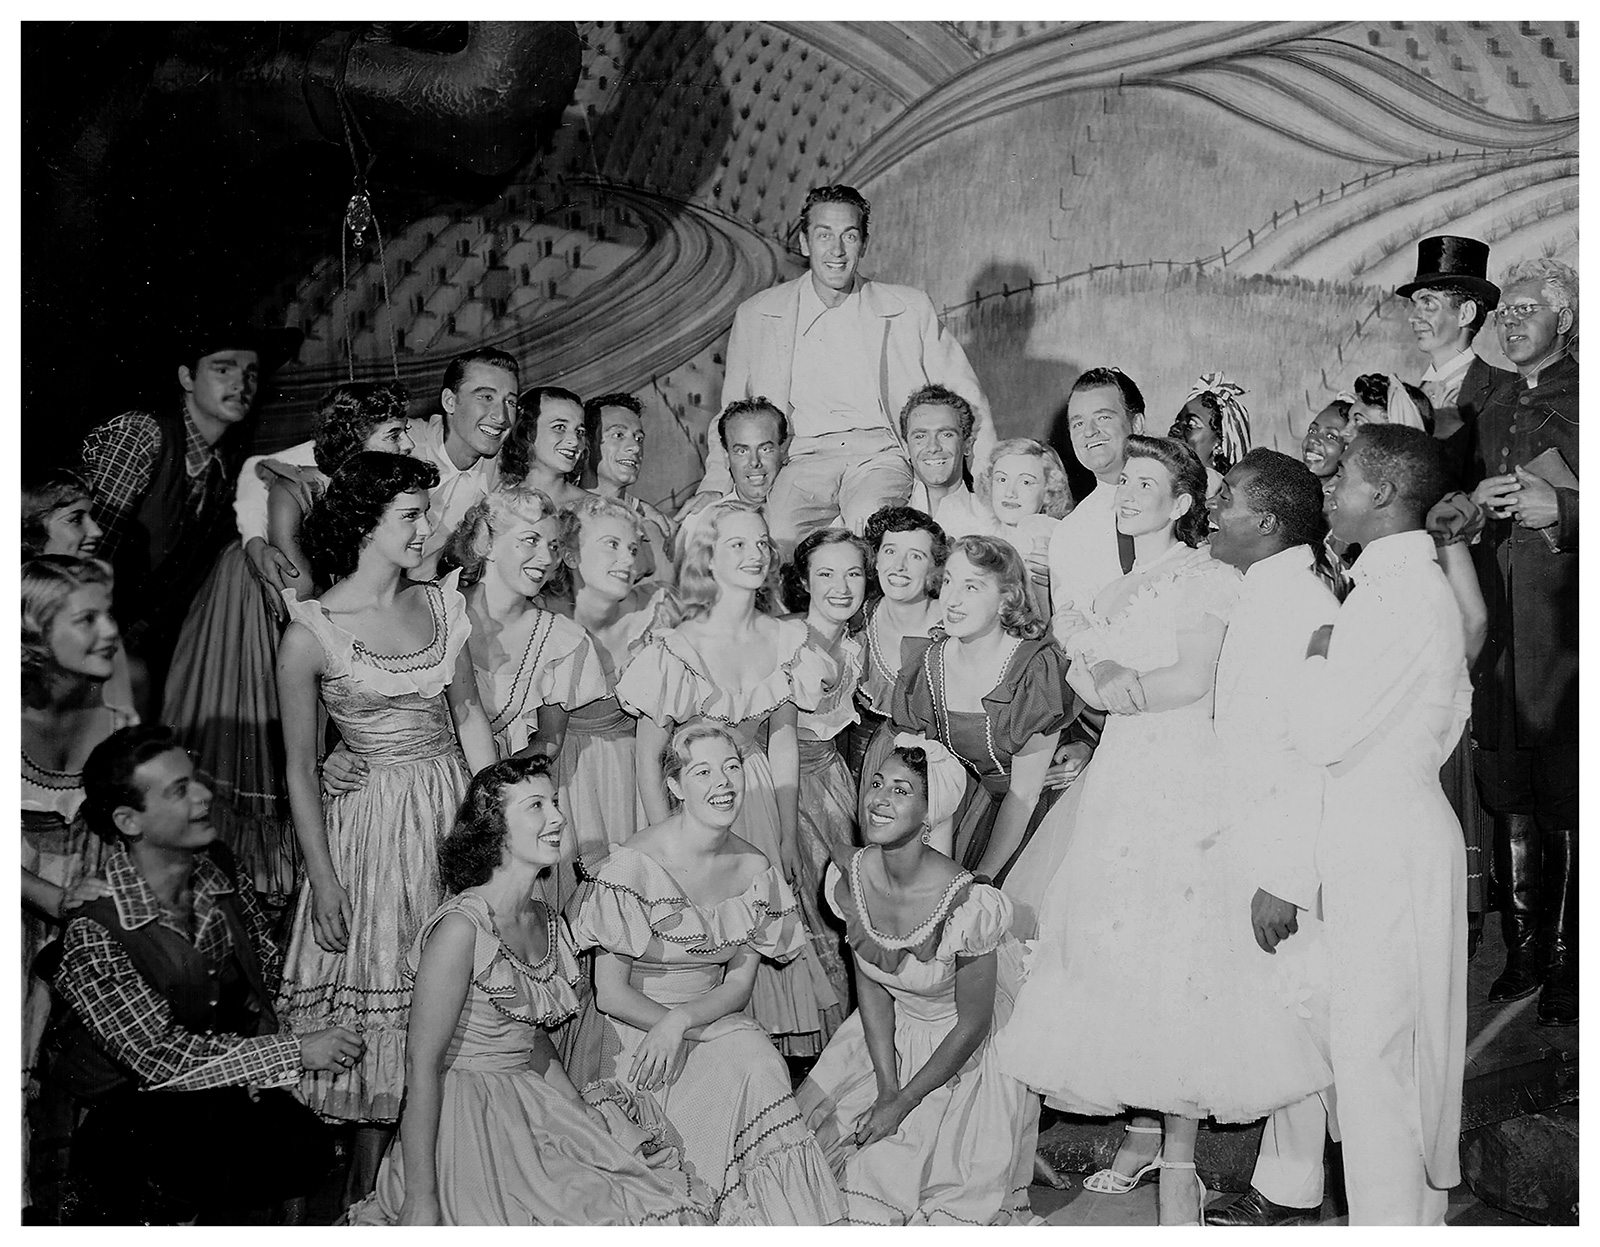 Deanna Bowen, Theatre Under the Stars' cast photo from Finian's Rainbow, circa 1953, 2019, archival inkjet print on cotton rag, paper, 22.5 x 18.5 inches. Courtesy the artist, Theatre Under the Stars and Cecilia and Roger Smith